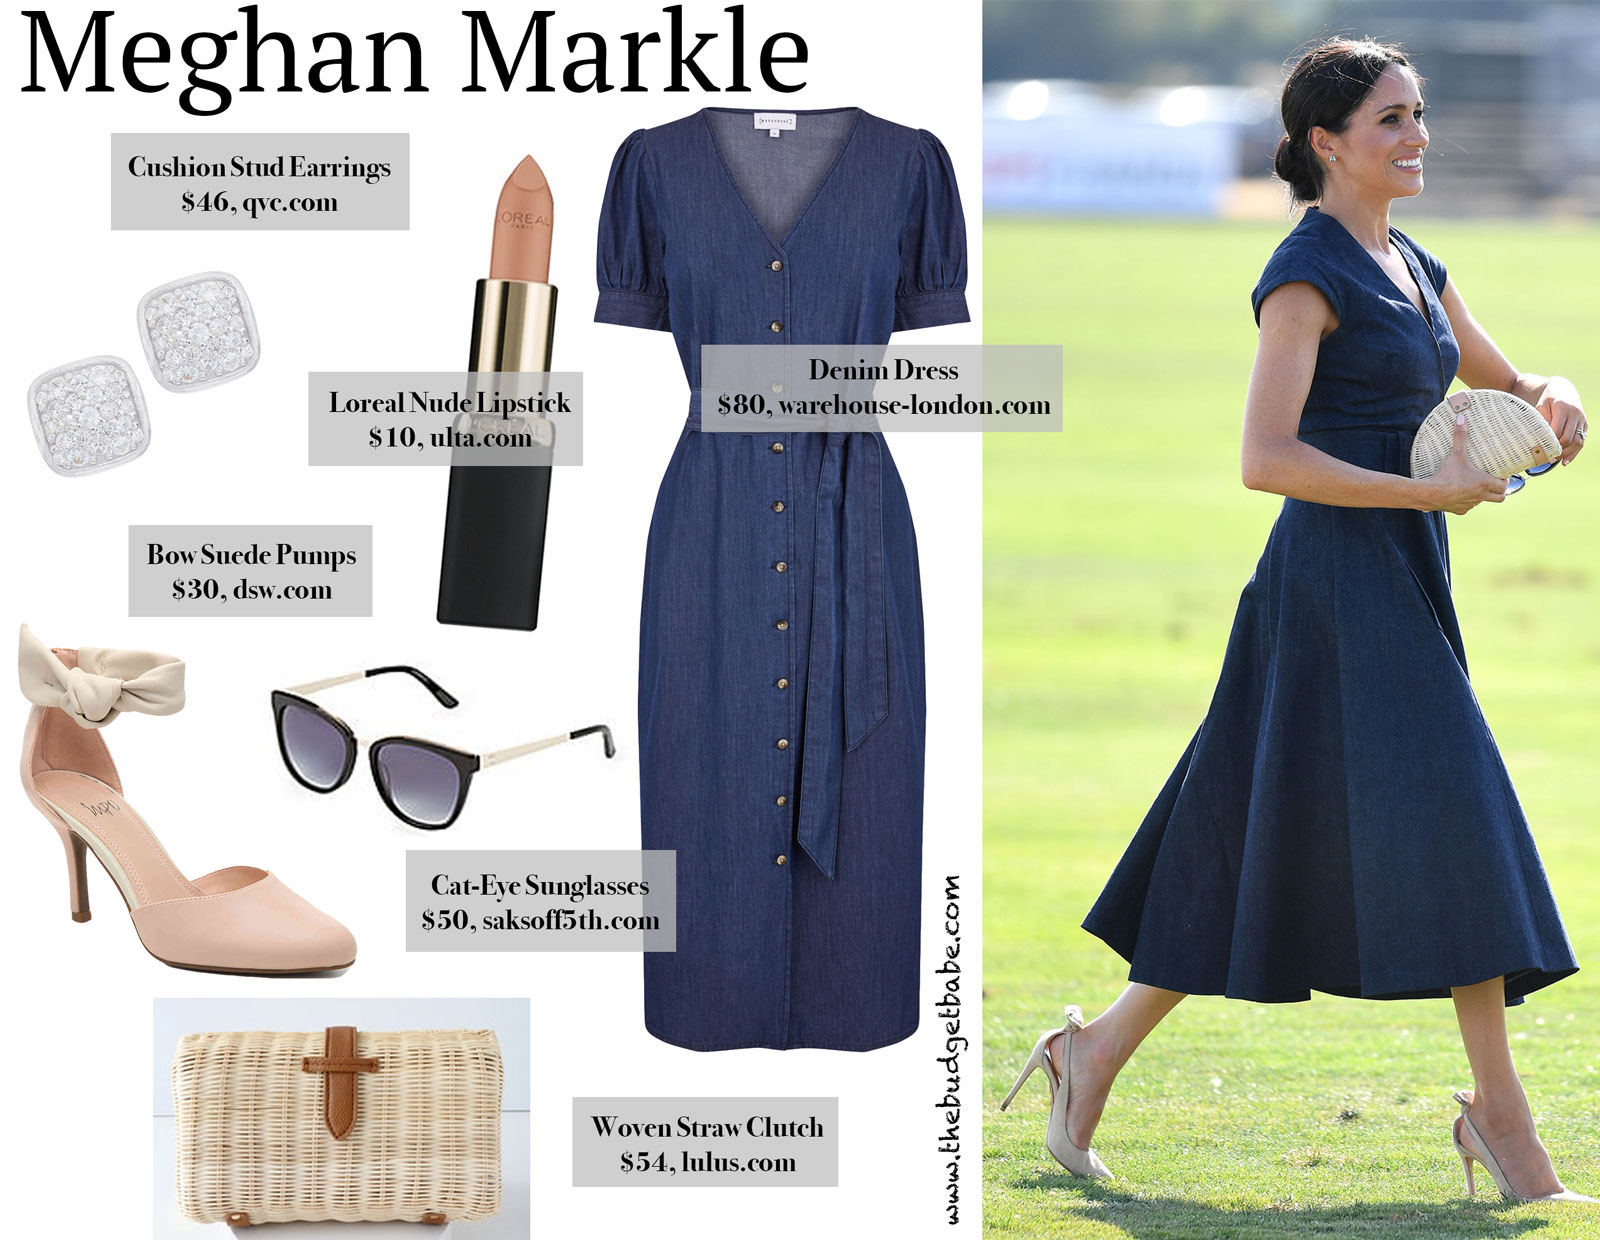 55506c97567 Meghan Markle s Denim Dress and Bow Suede Heels Look for Less